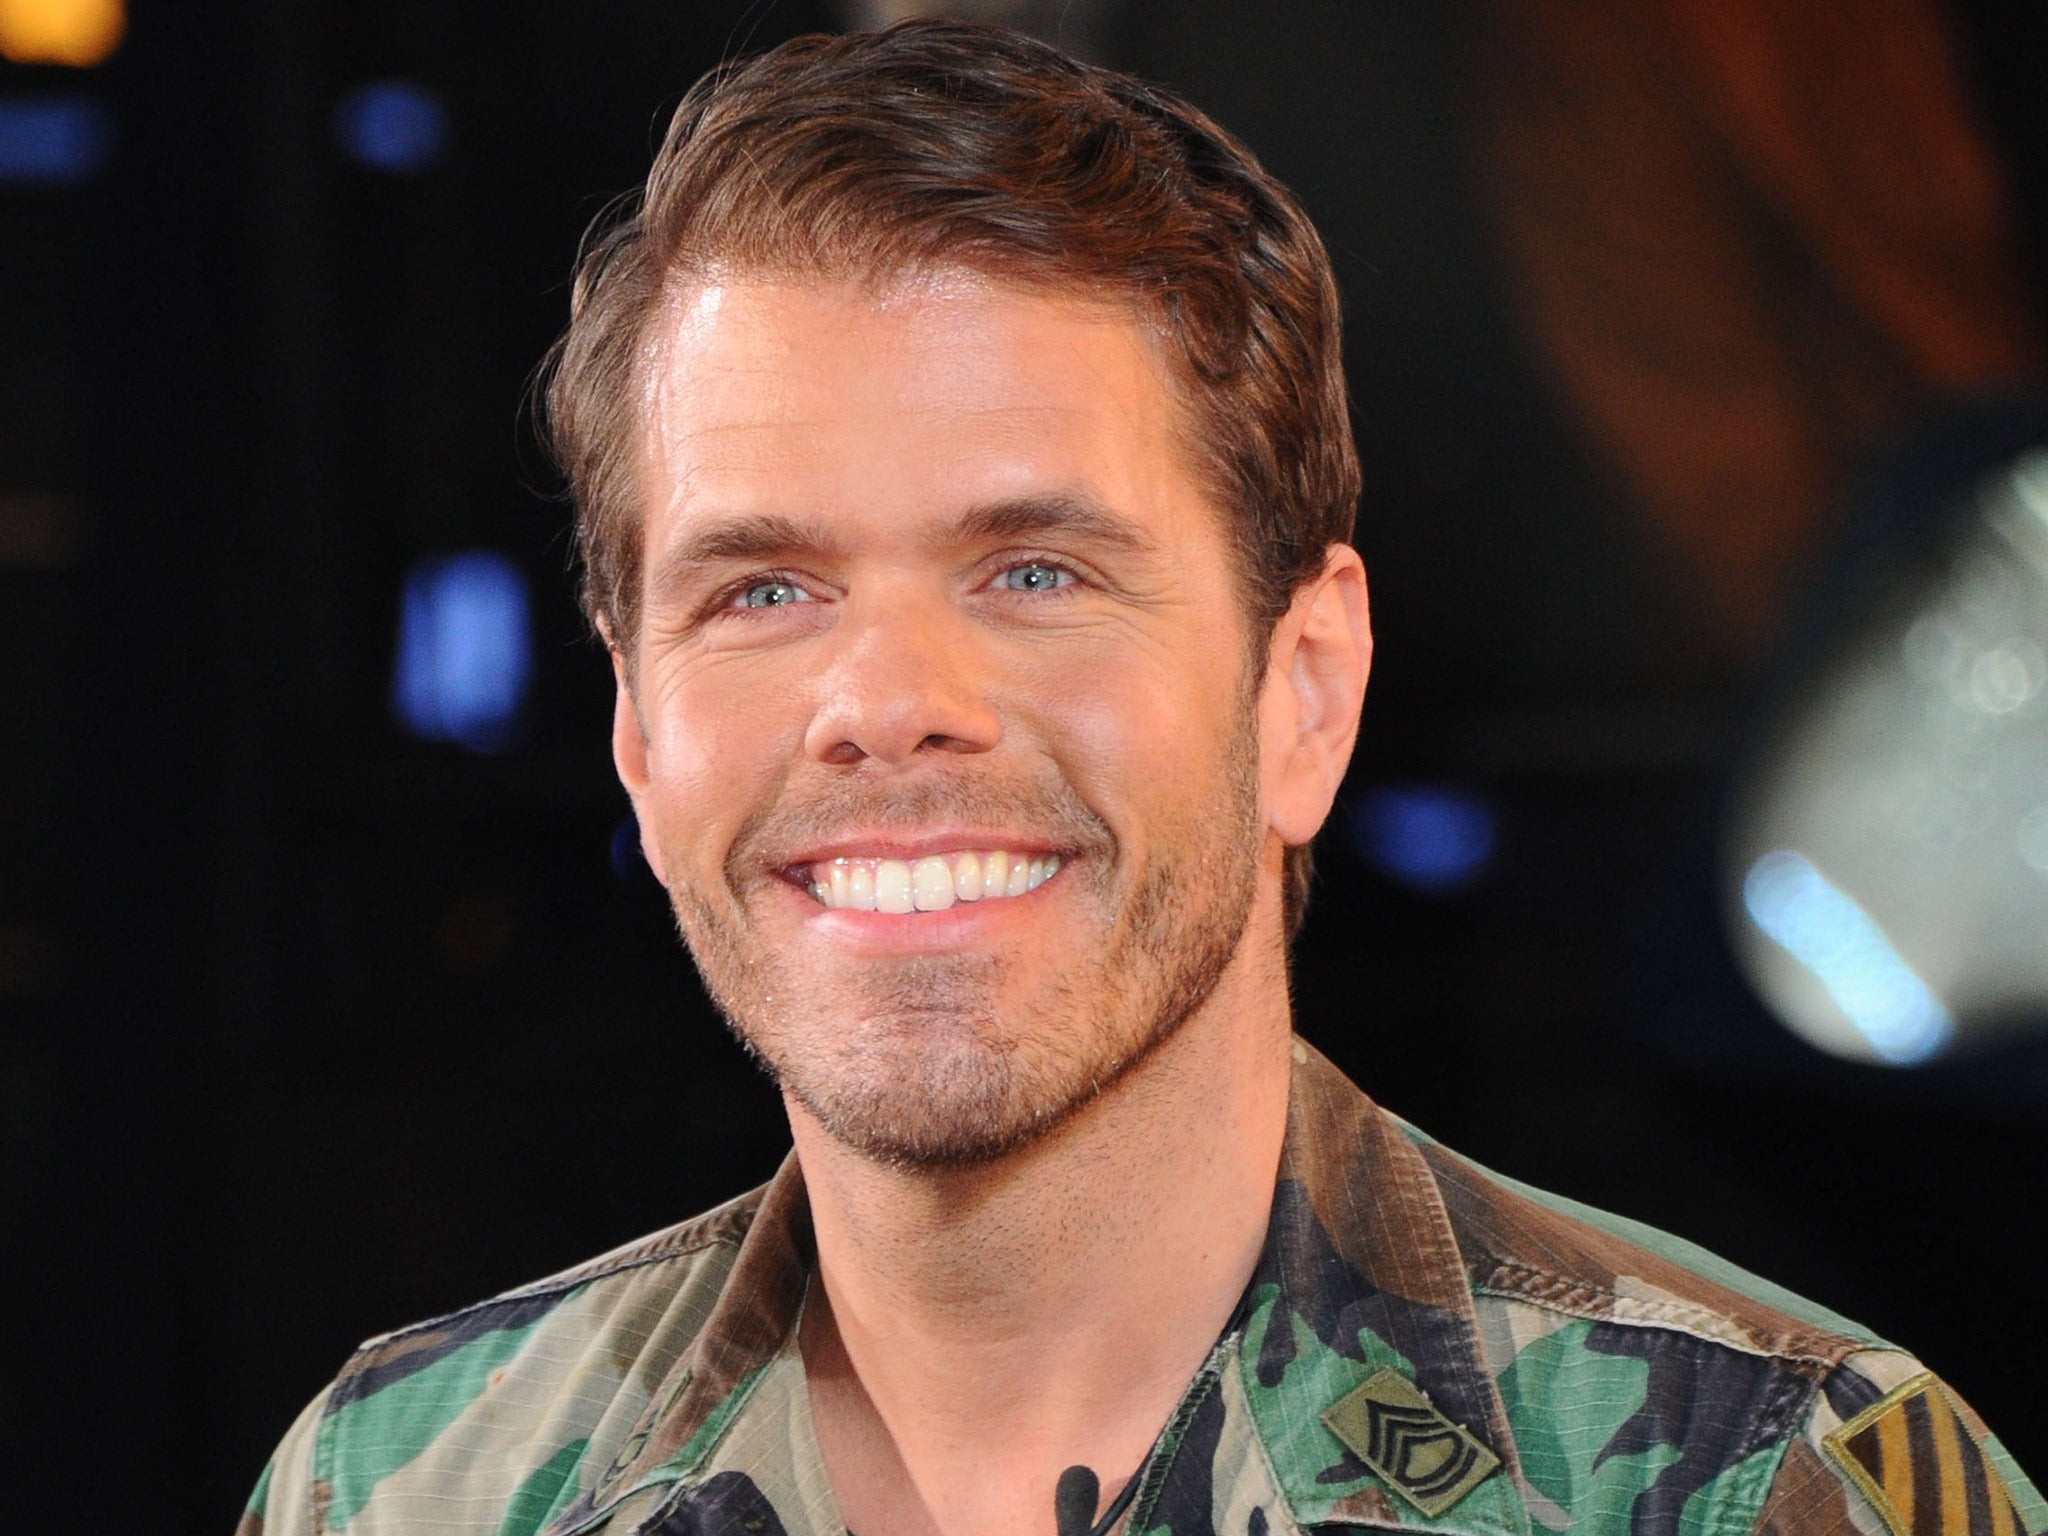 perez hilton defends shower photo with his son after being